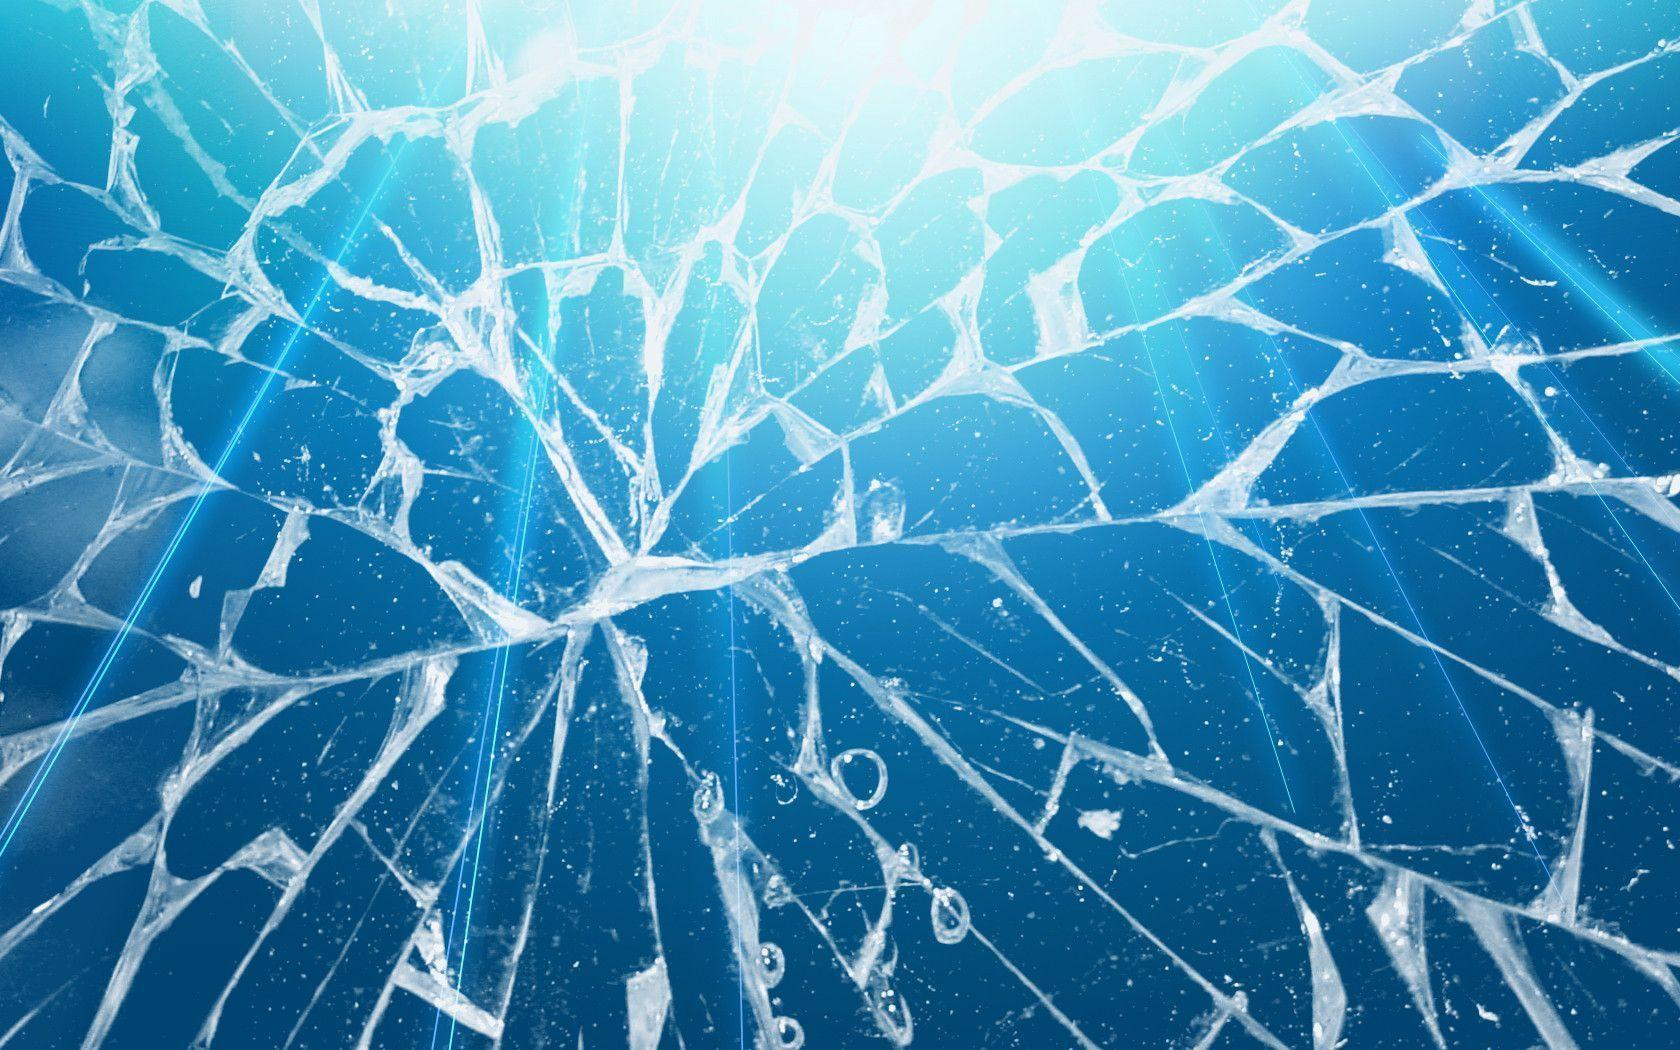 Broken Windows 7 Wallpapers